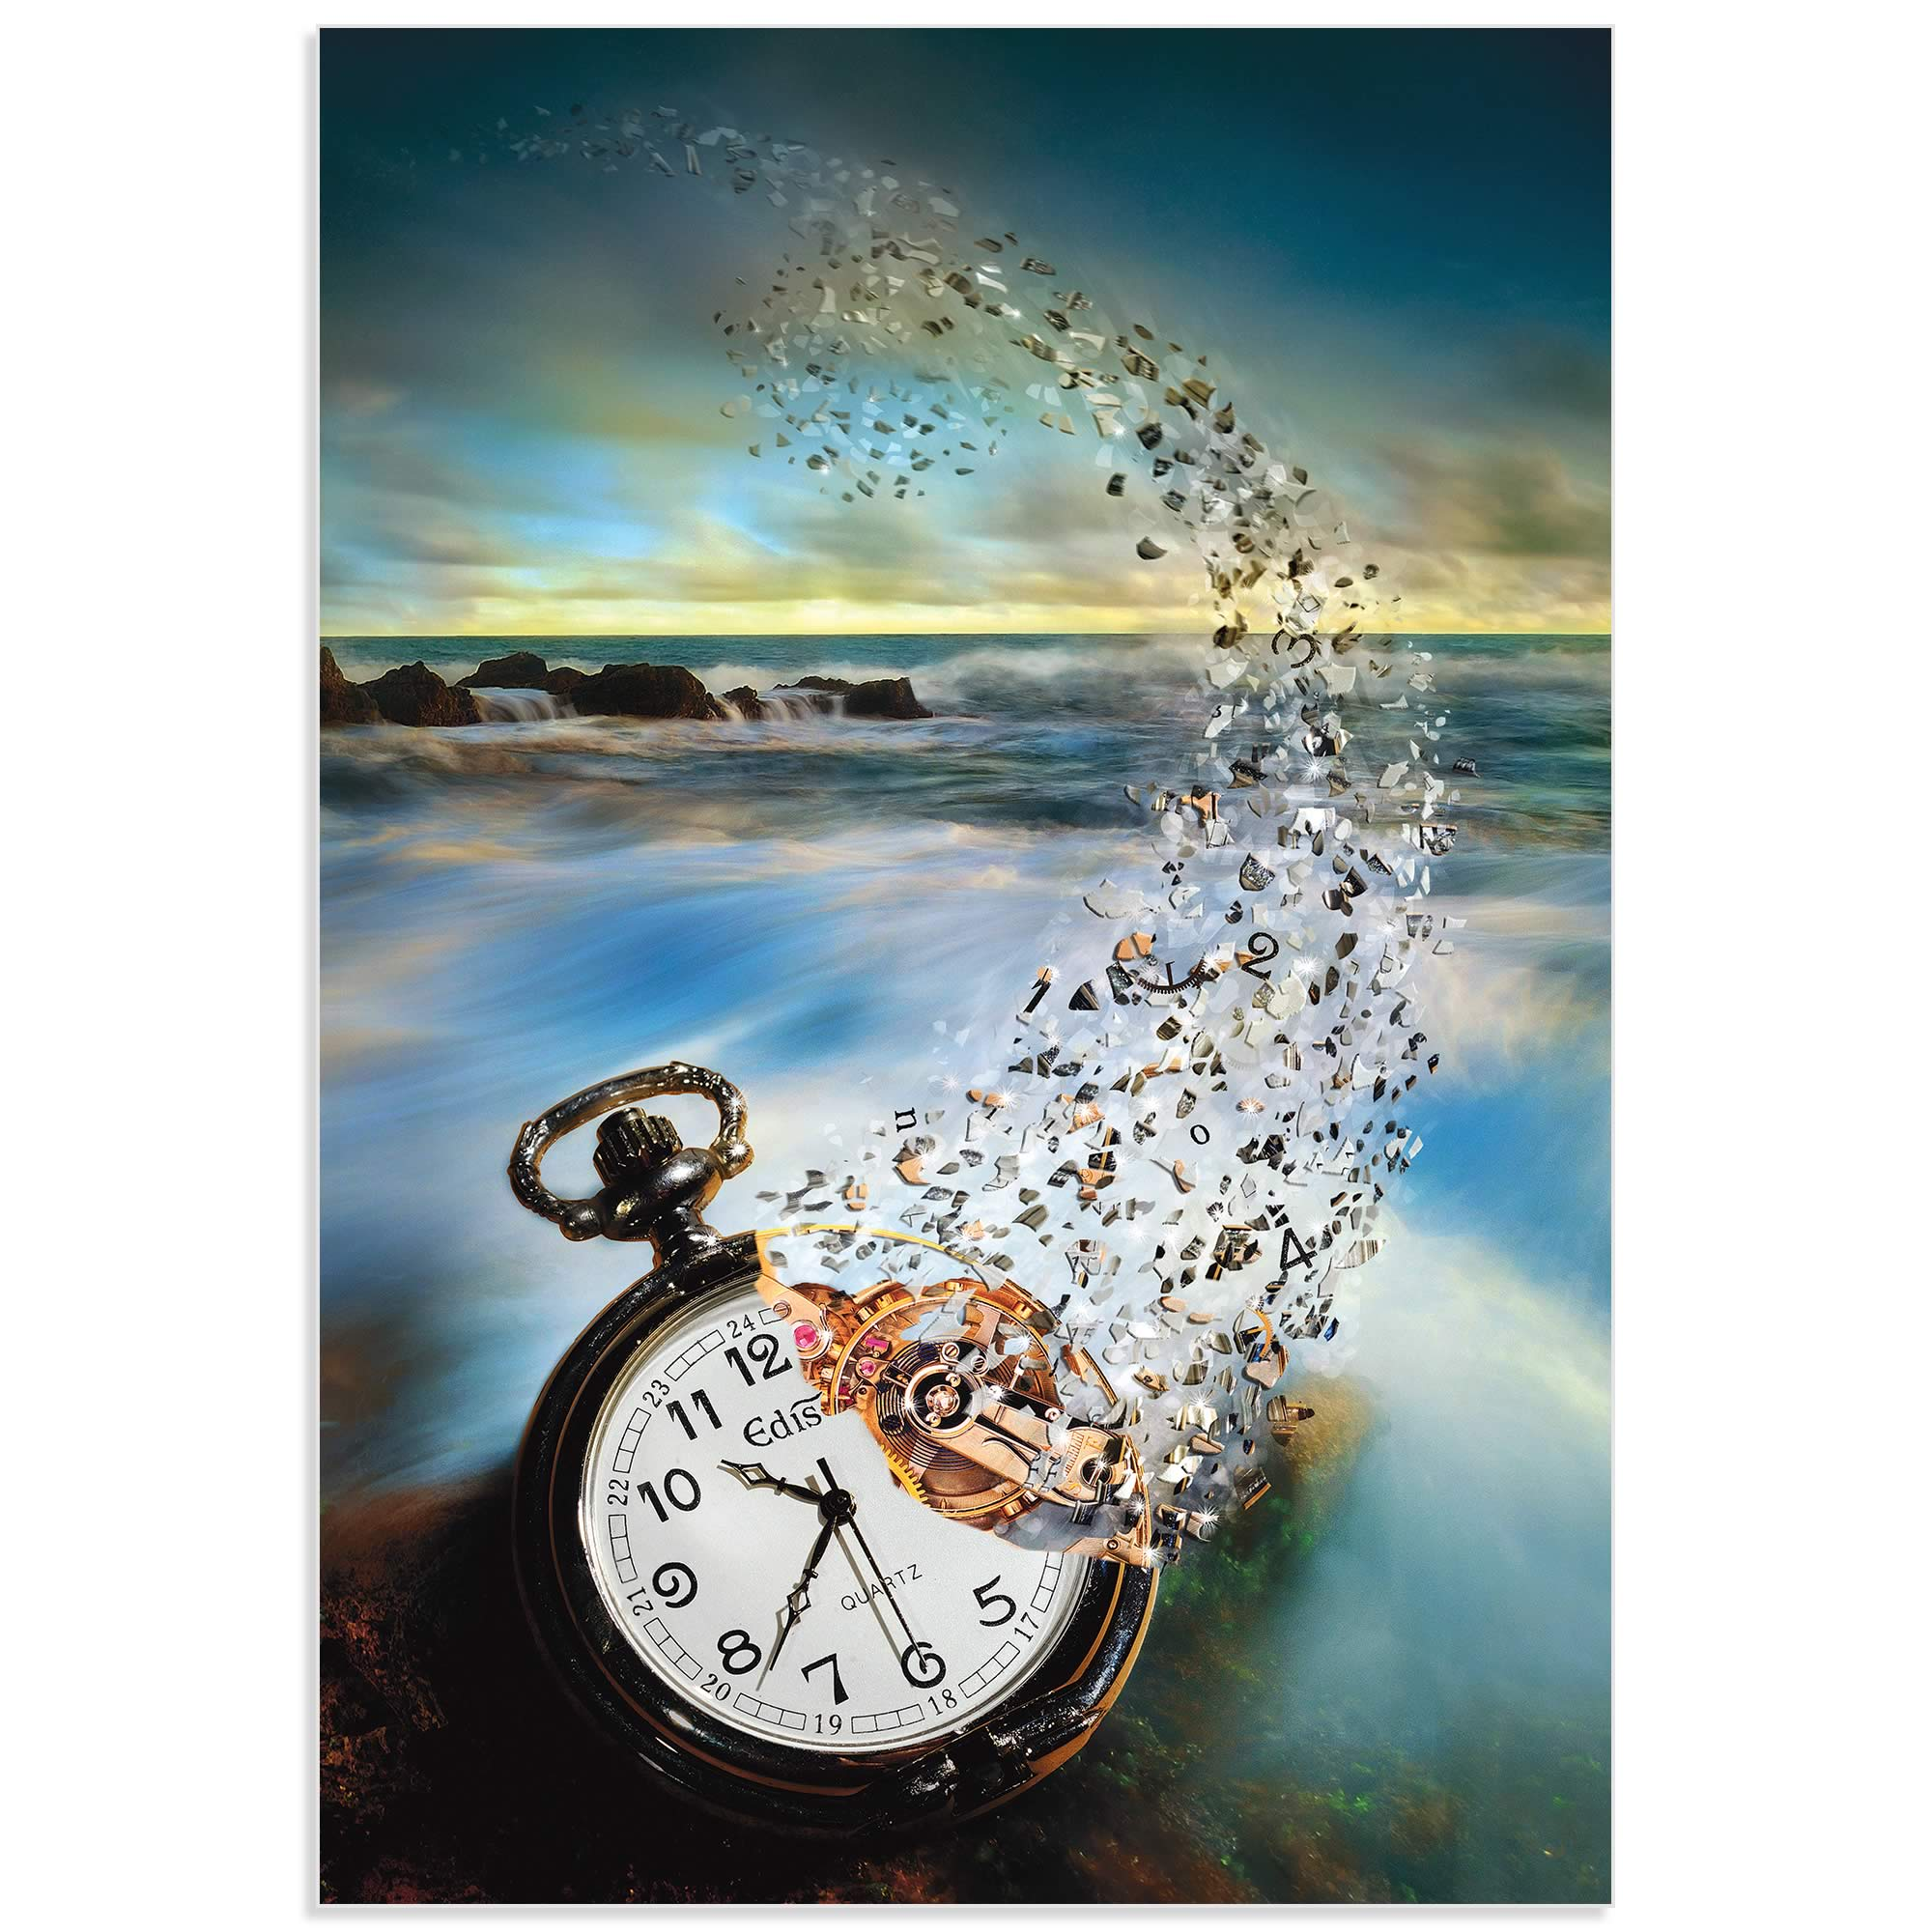 The Vanishing Time by Sandy Wijaya - Steam Punk Art on Metal or Acrylic - Alternate View 2